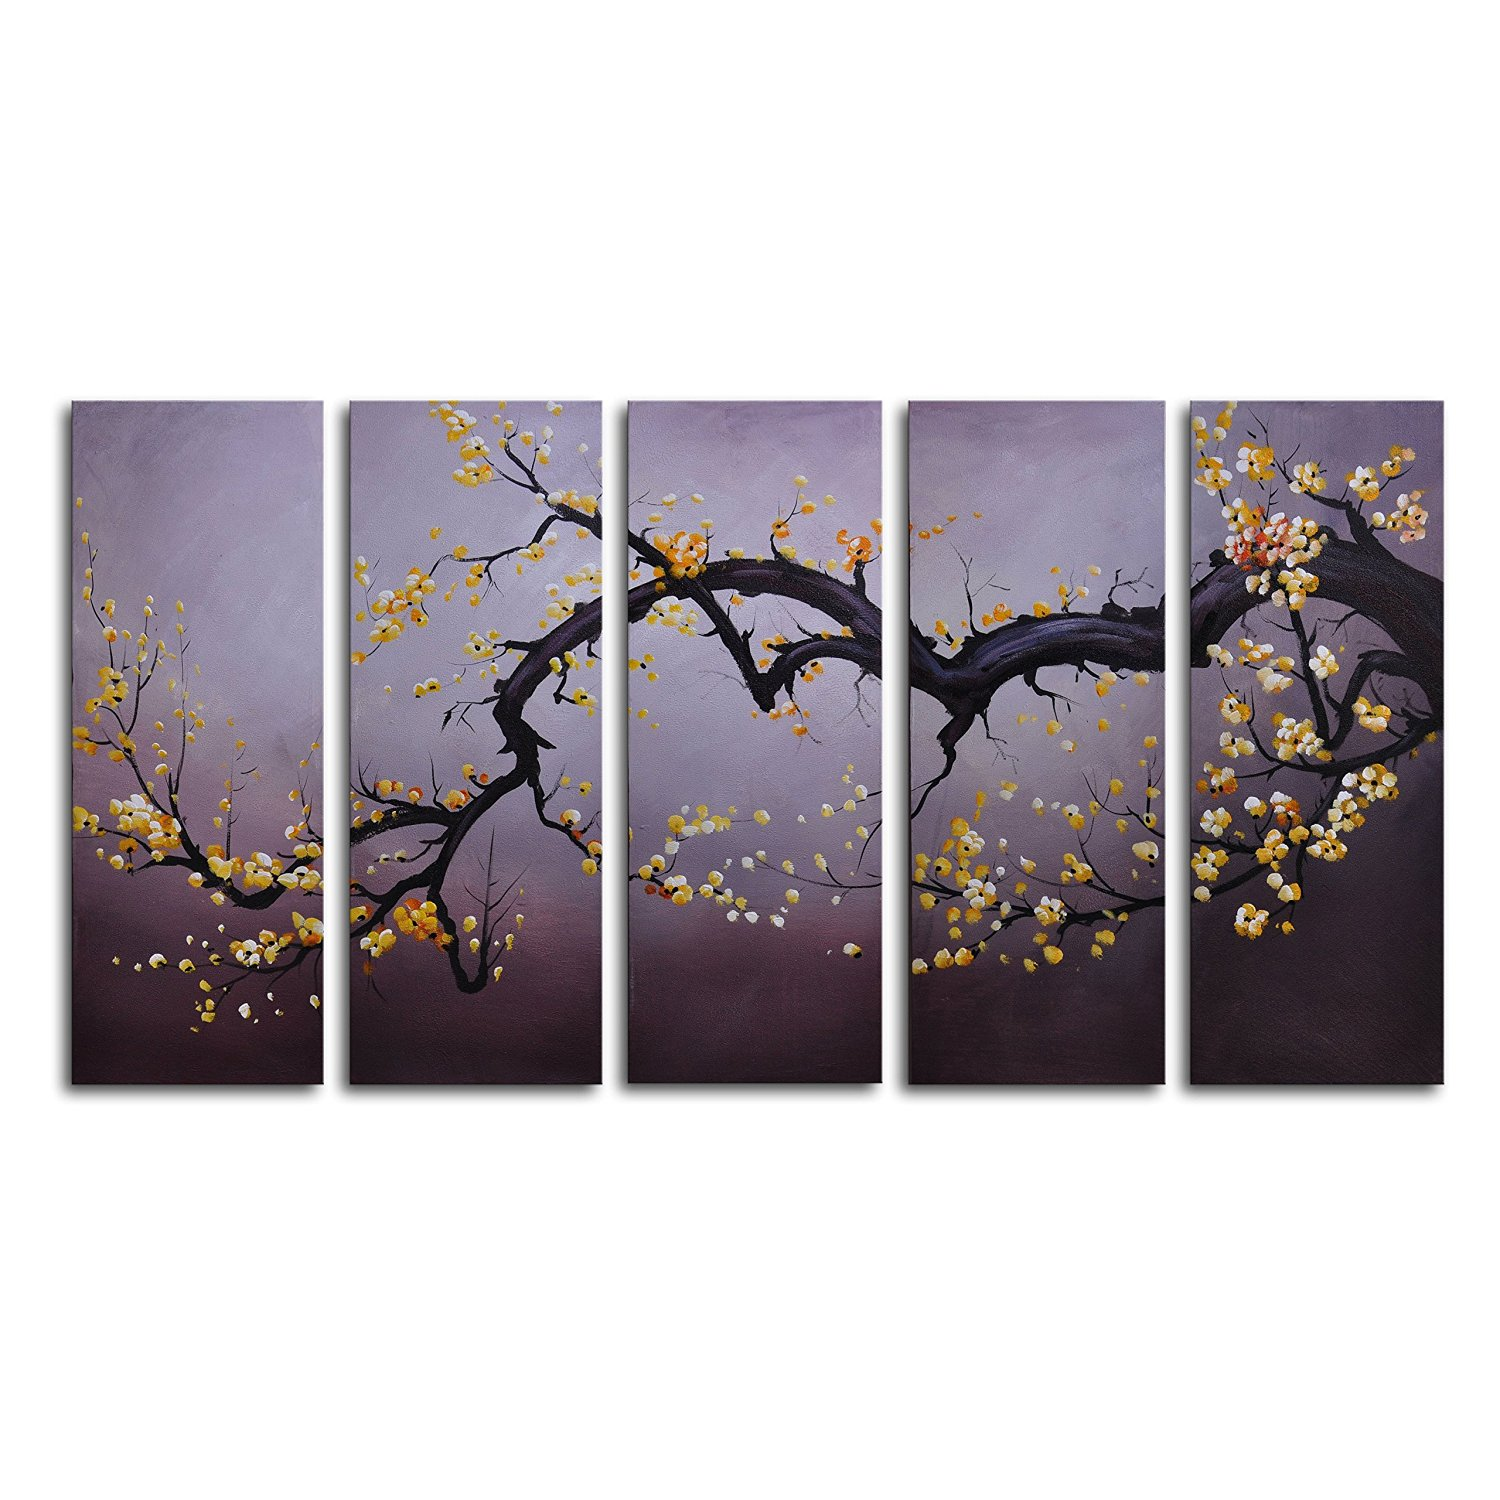 TJie Art Hand Painted Mordern Oil Paintings Japanese Branch Charcoal Sky 5, For indoor use 5-piece wall art in classic style, Hand-painted on canvas with high-quality oil, Nature theme in a mix of grey white and yellow, Dimensions: 60W x 32H in.